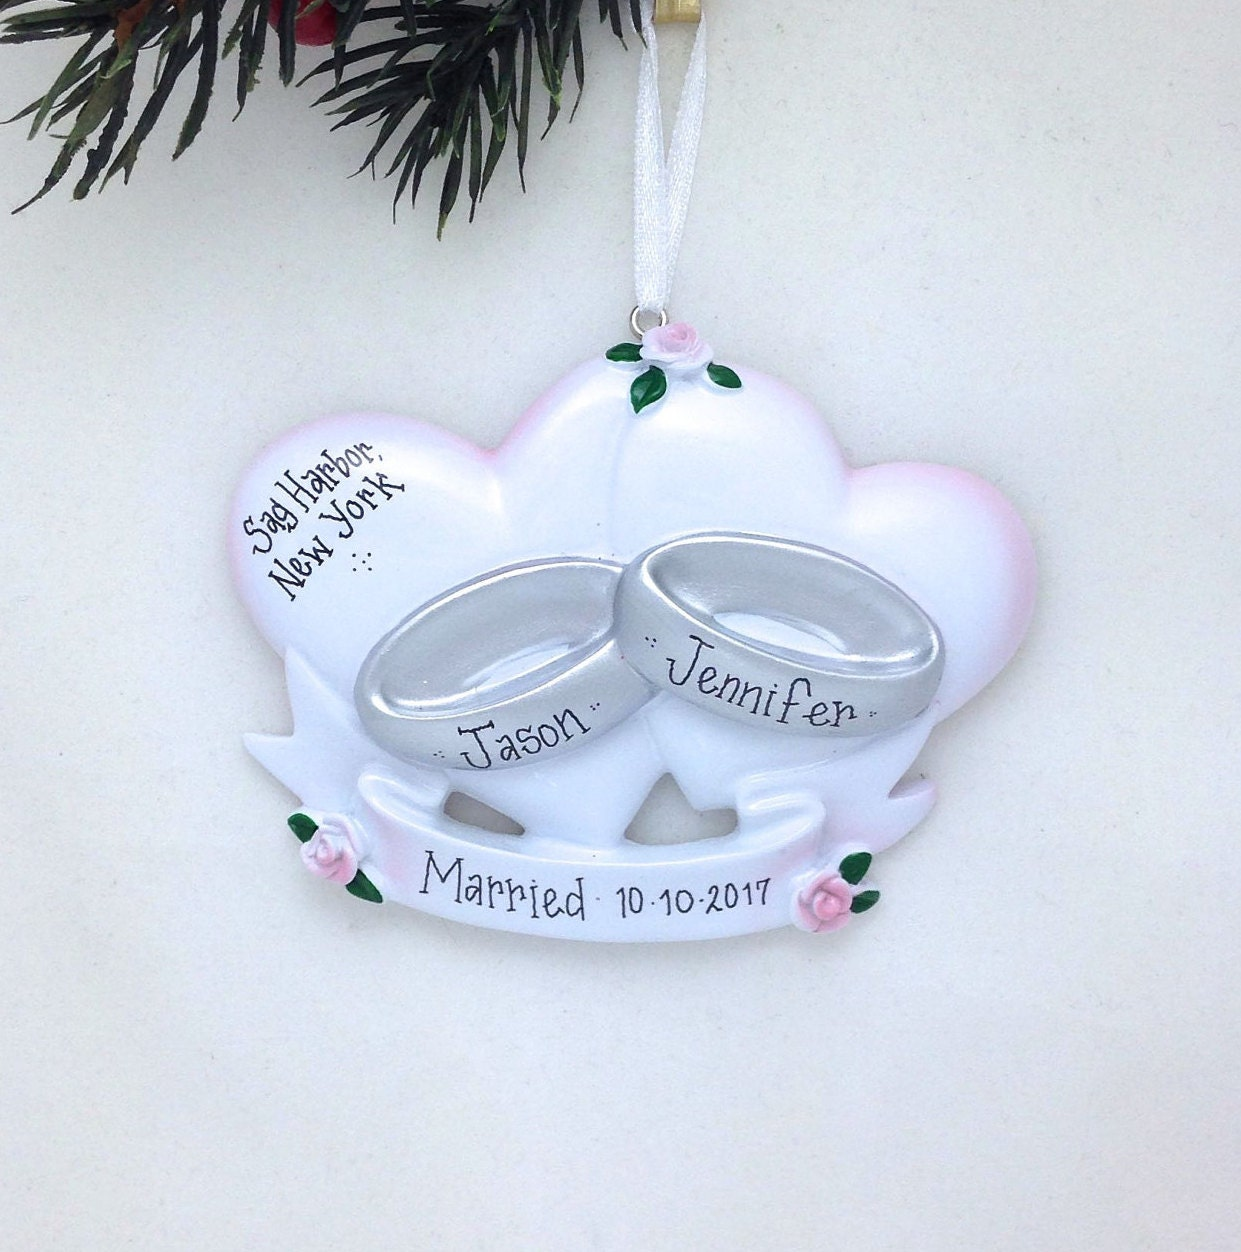 Wedding Rings Personalized Christmas Ornament / Wedding Ornament ...